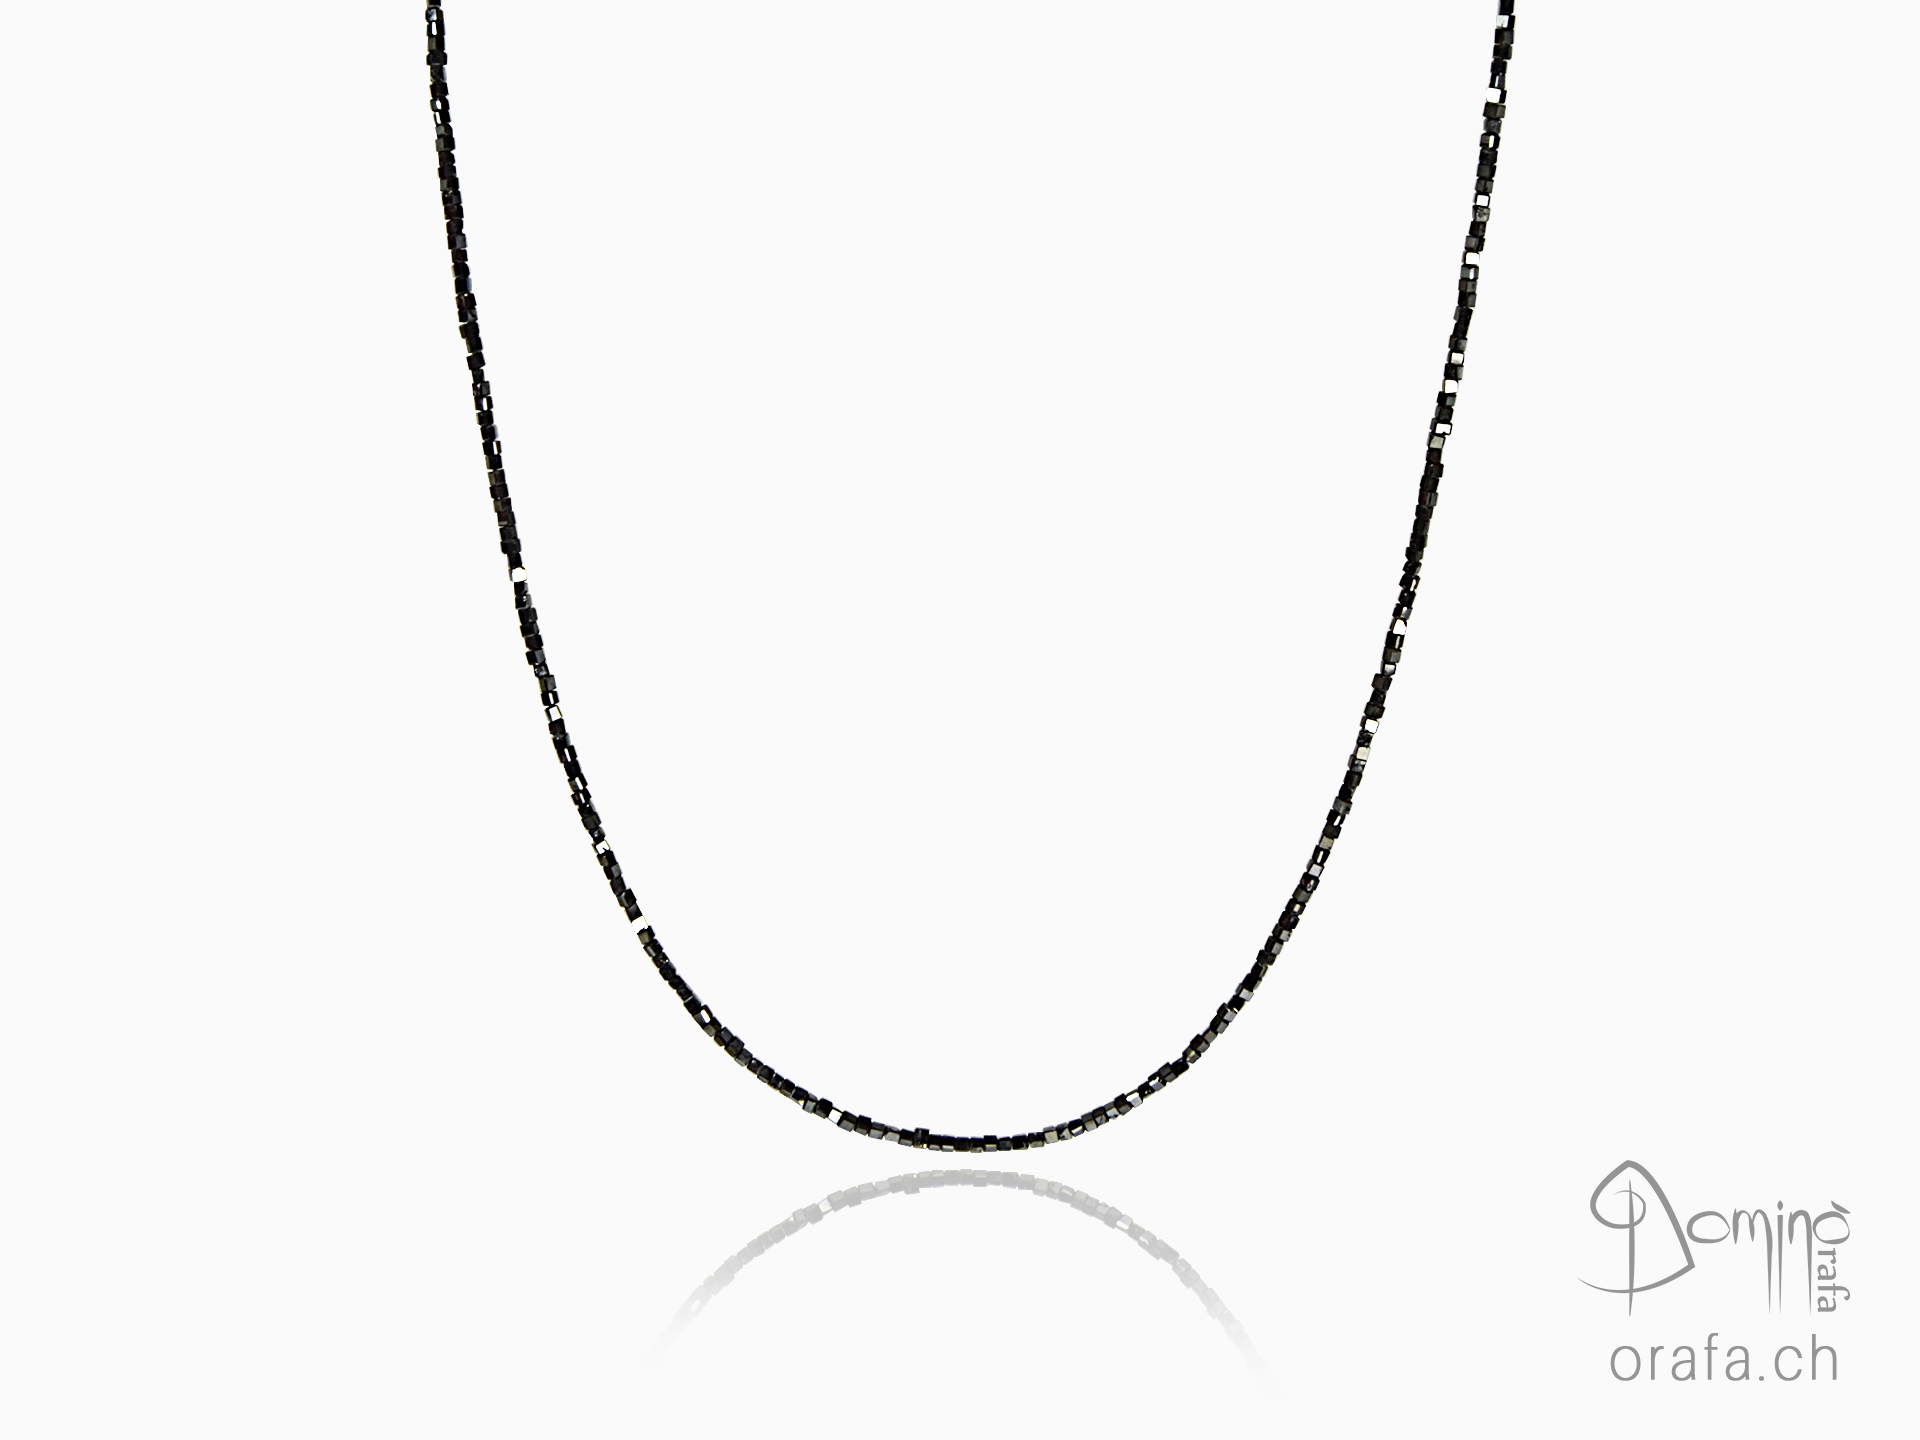 Collier di diamanti neri e oro